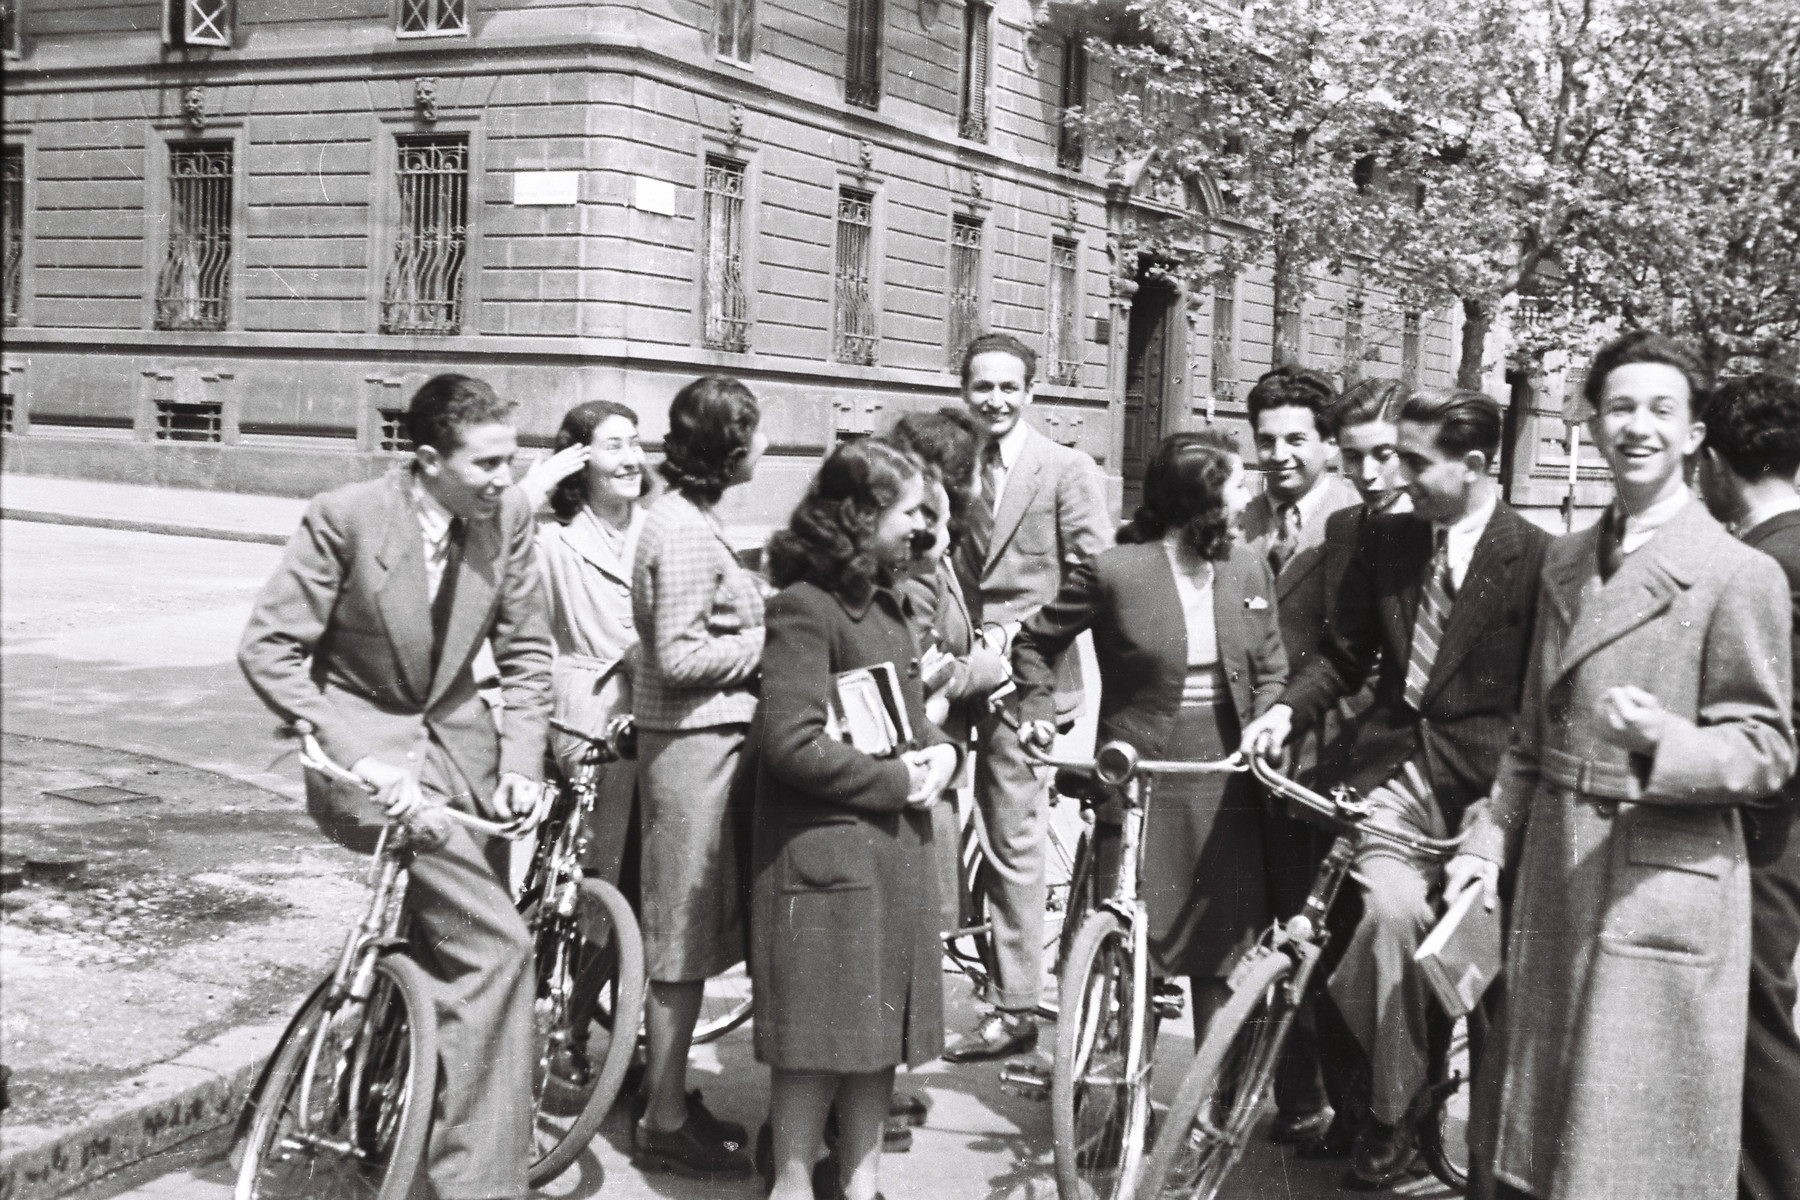 Students from the Scuolo via Eupili ride their bikes down the Via Canova while on a school trip.